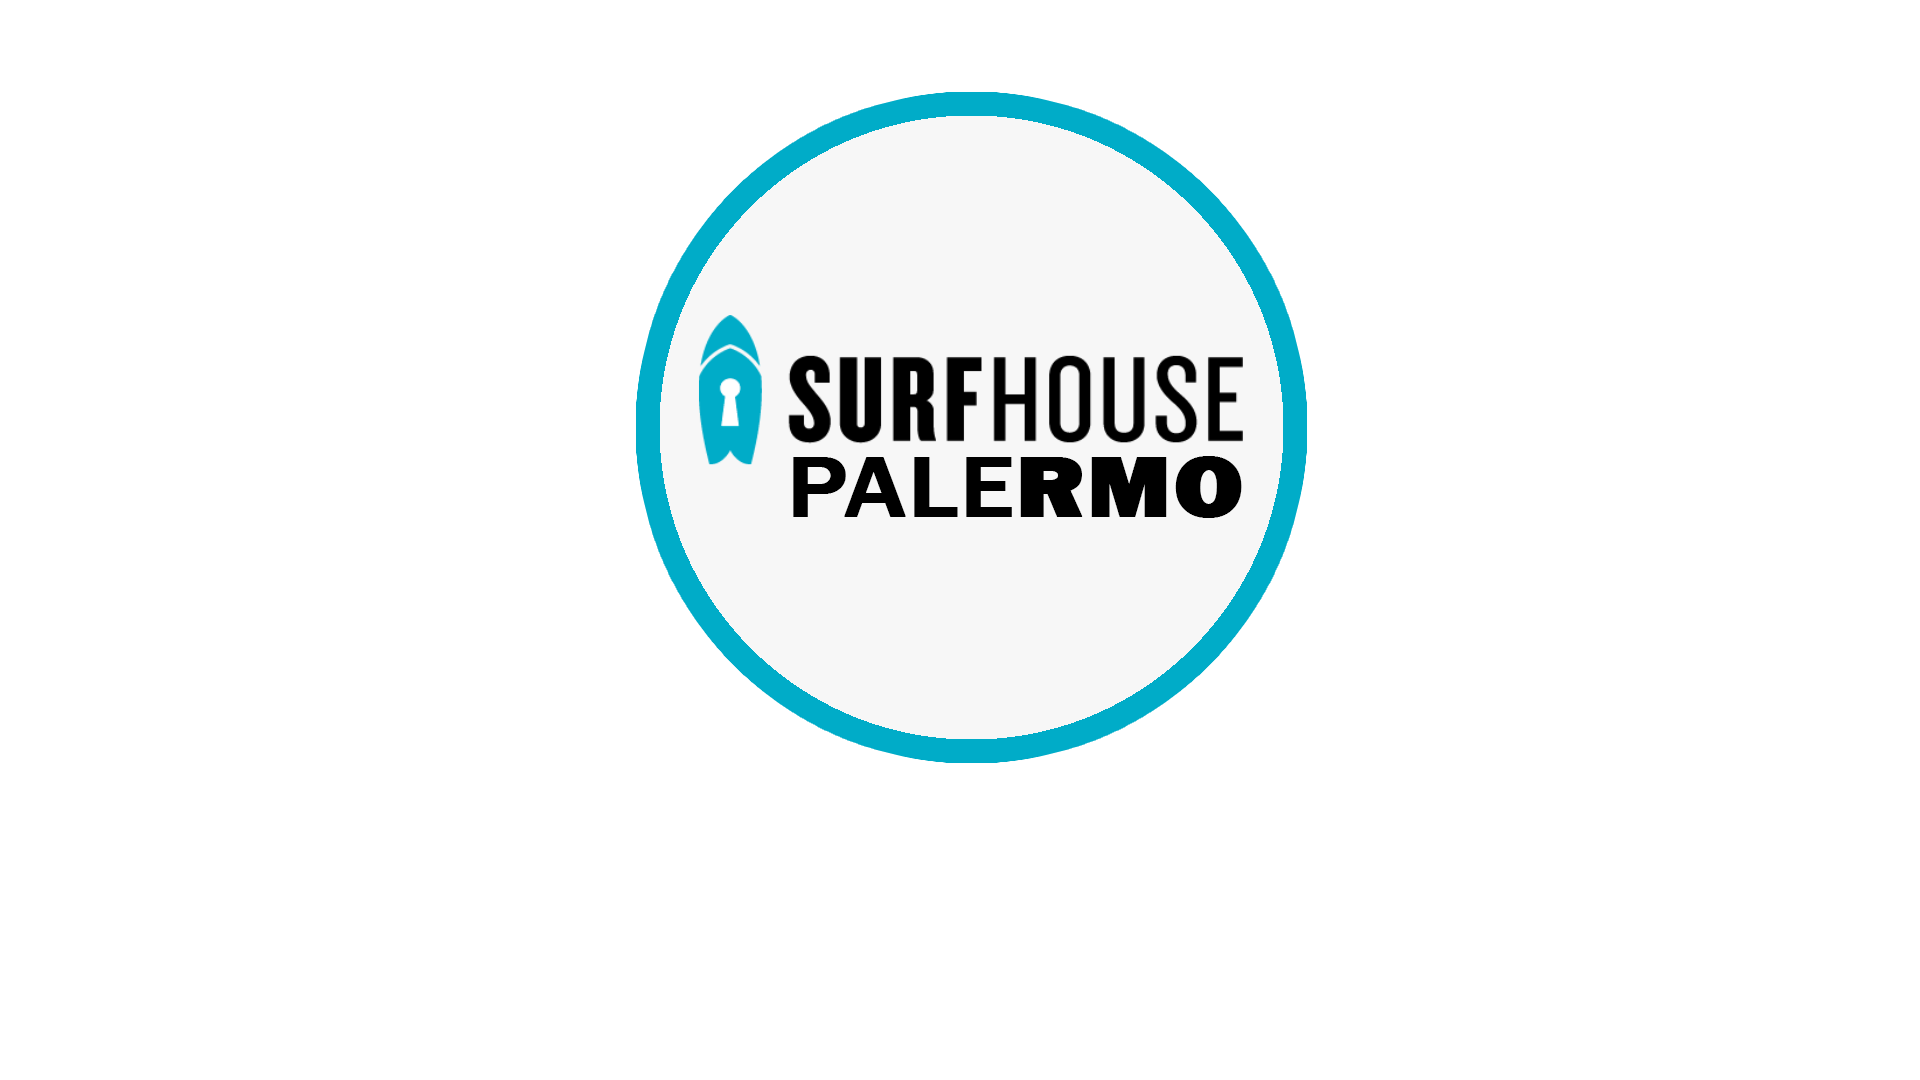 LOGO SURF HOUSE palermo